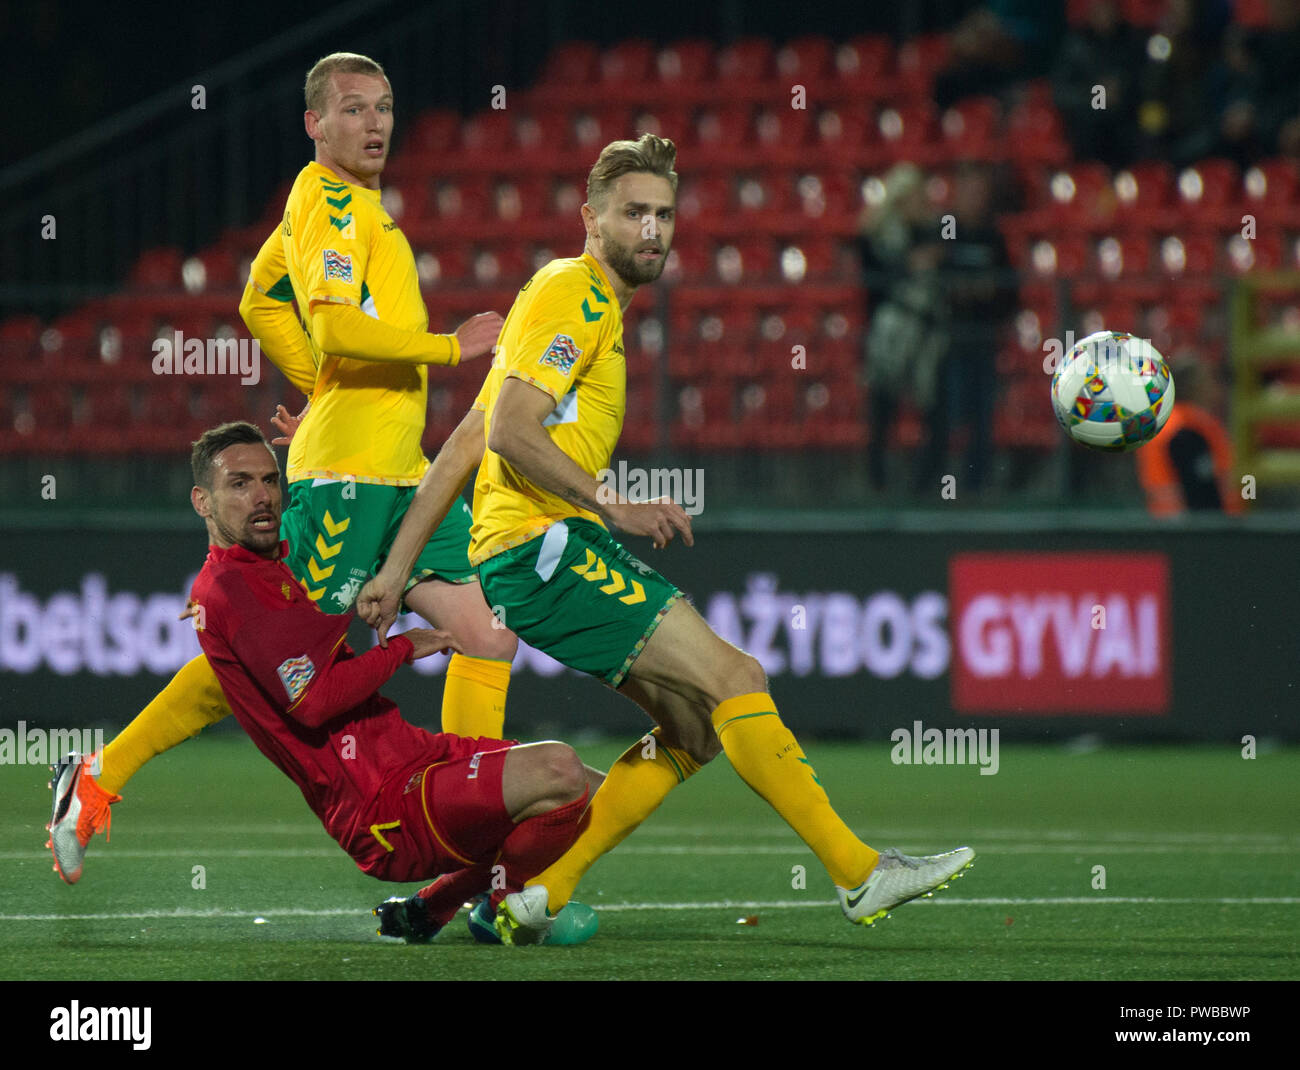 Vilnius, Lithuania. 14th Oct, 2018. Marko Vesovic (Bottom) of Montenegro vies with Arturas Zulpa (R) of Lithuania during the UEFA Nations League C match at LFF Stadium in Vilnius, Lithuania, on Oct. 14, 2018. Montenegro won 4-1. Credit: Alfredas Pliadis/Xinhua/Alamy Live News - Stock Image